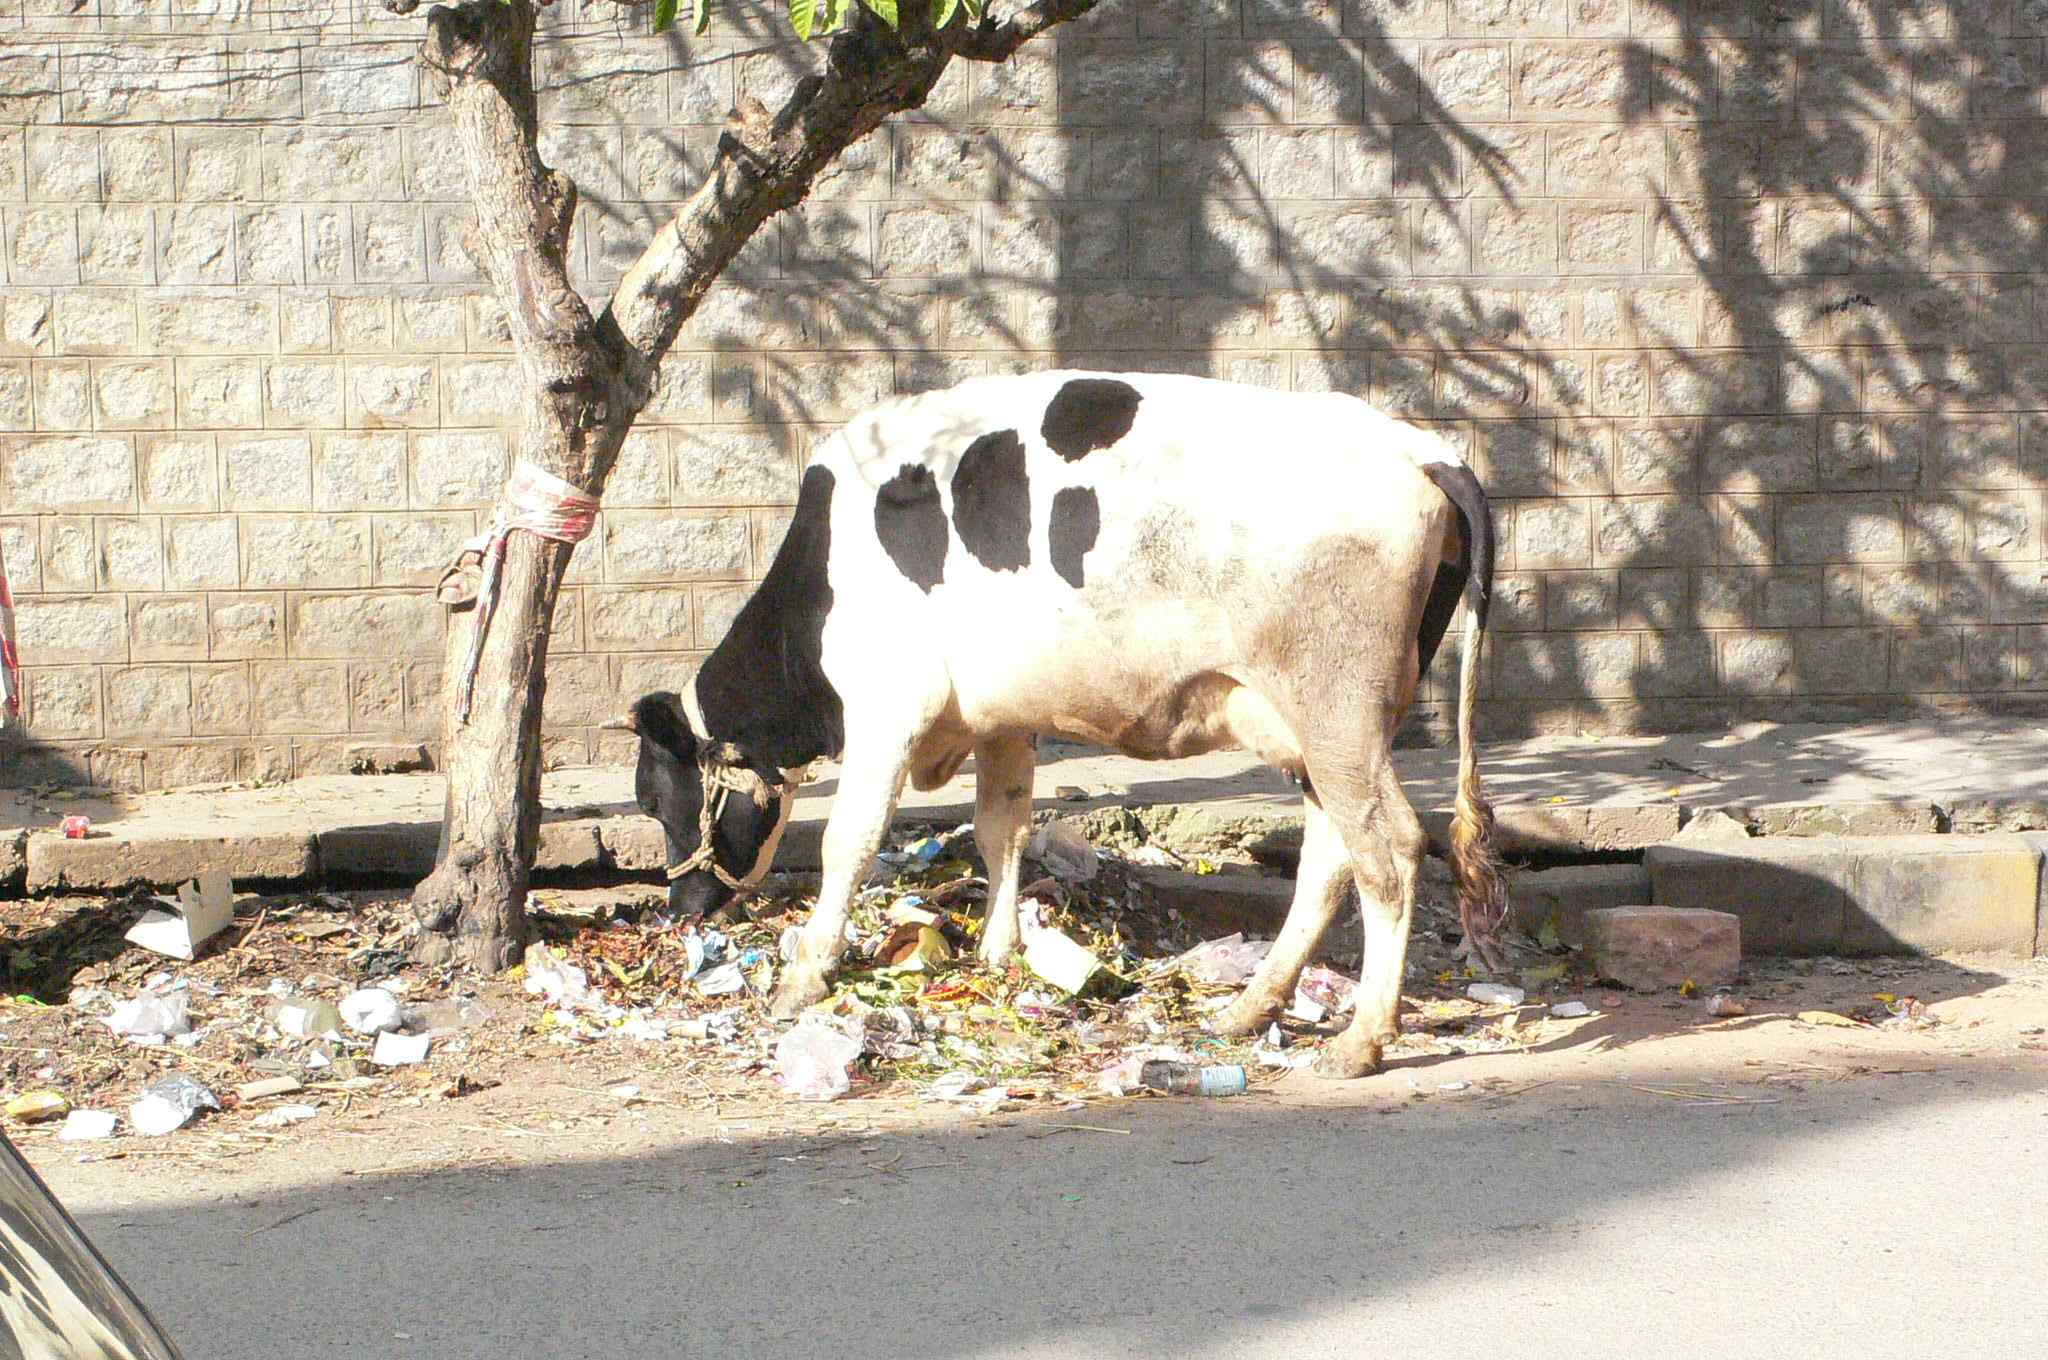 The nearby holy cow